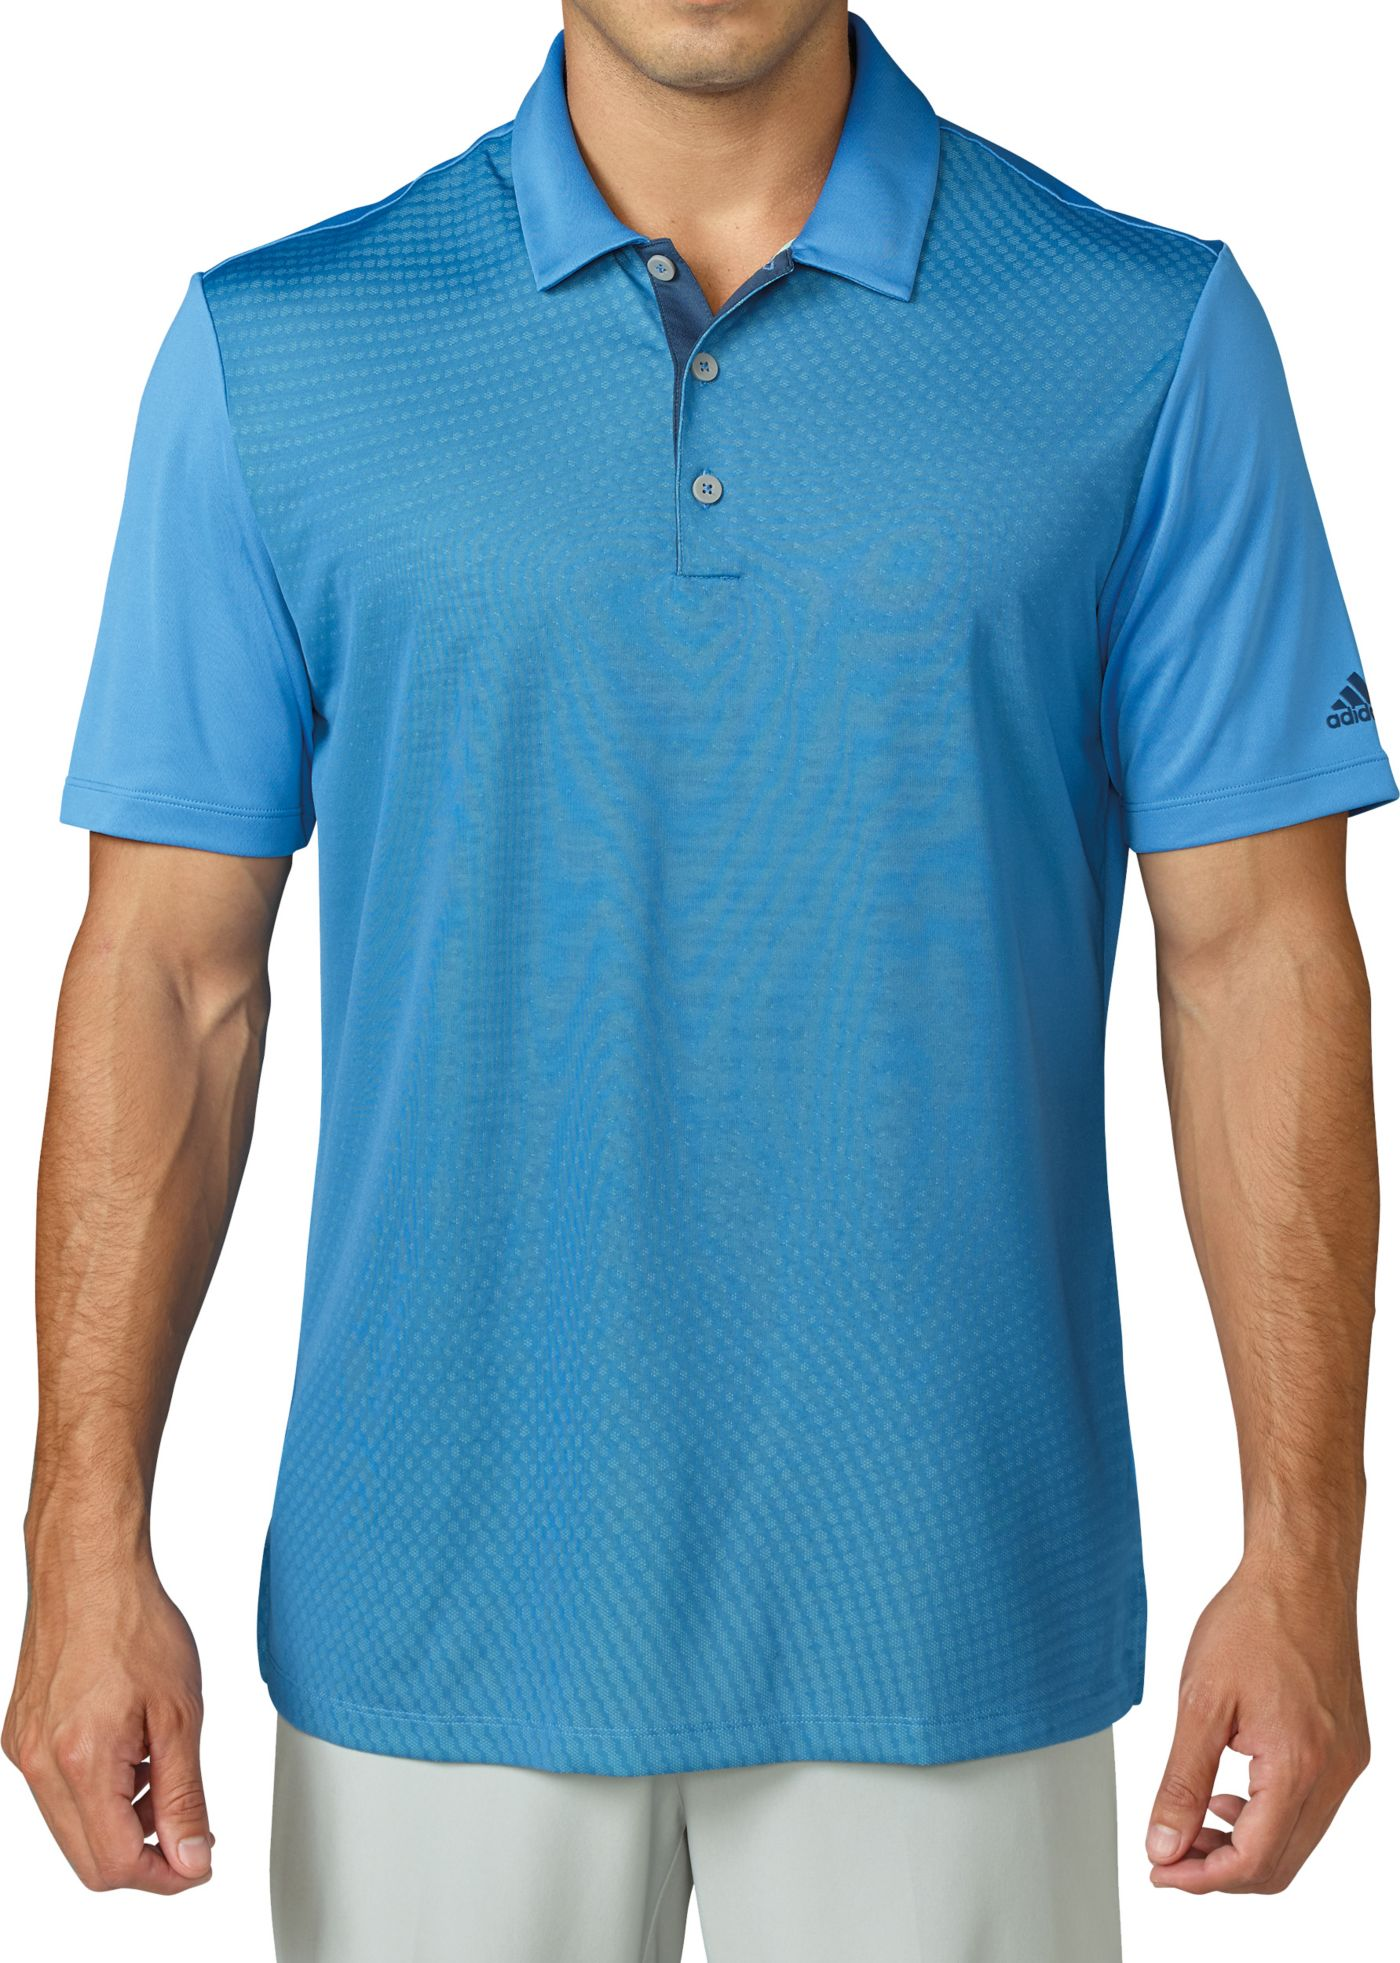 adidas climacool Gradient Polo